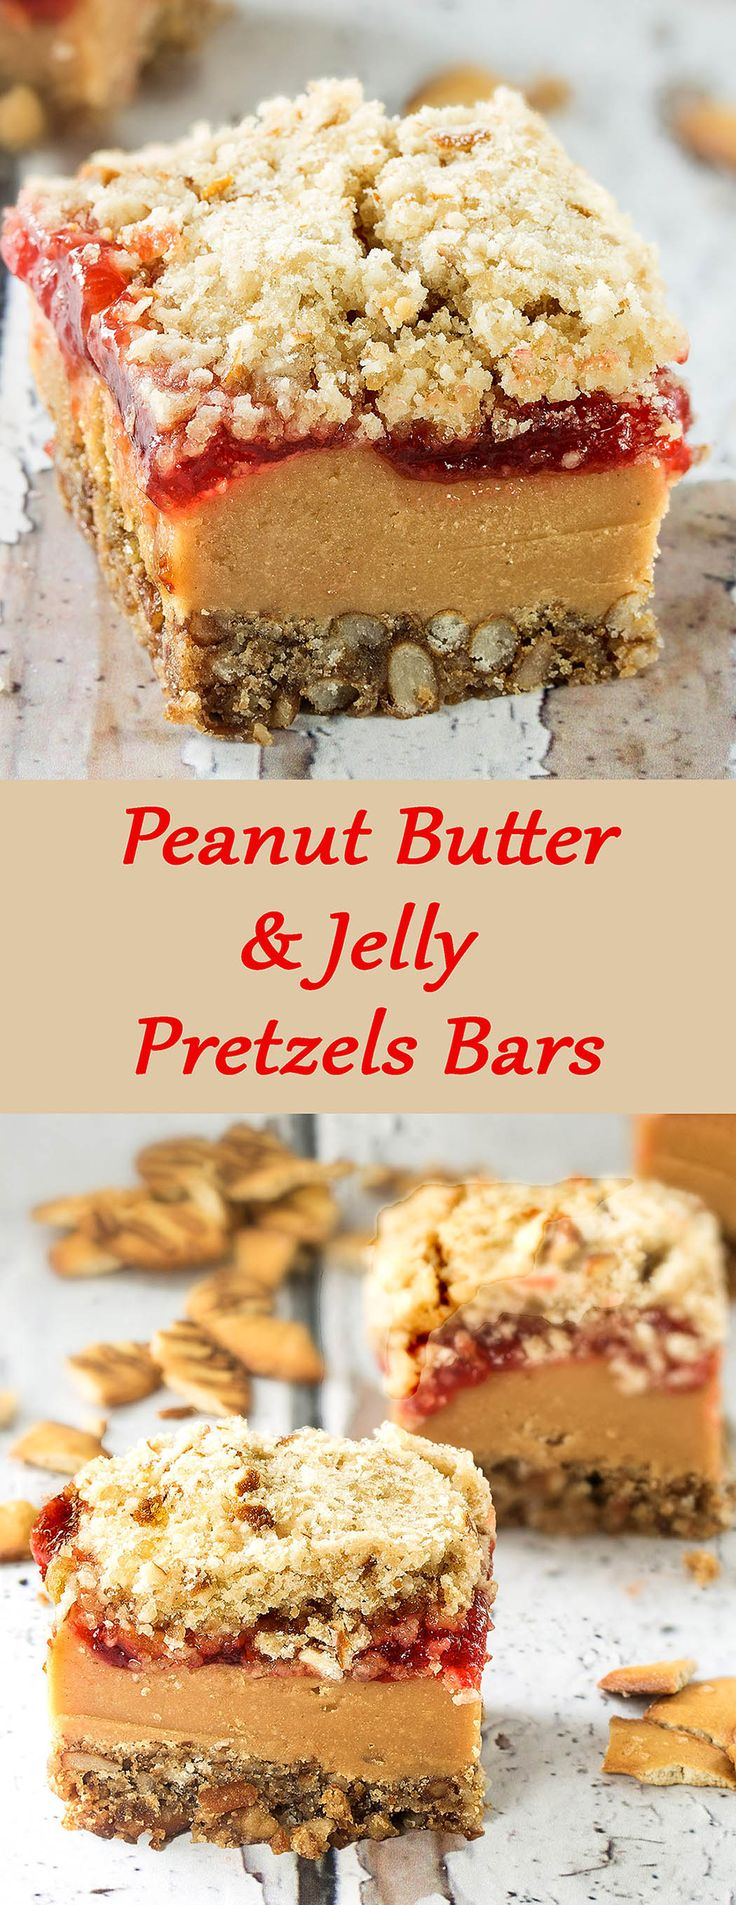 Delicious and easy-to-make bars, with a wonderful combination of sweet and salty. Peanut Butter & Jelly Pretzels Bars. #Something Sweet - Winnie's blog%